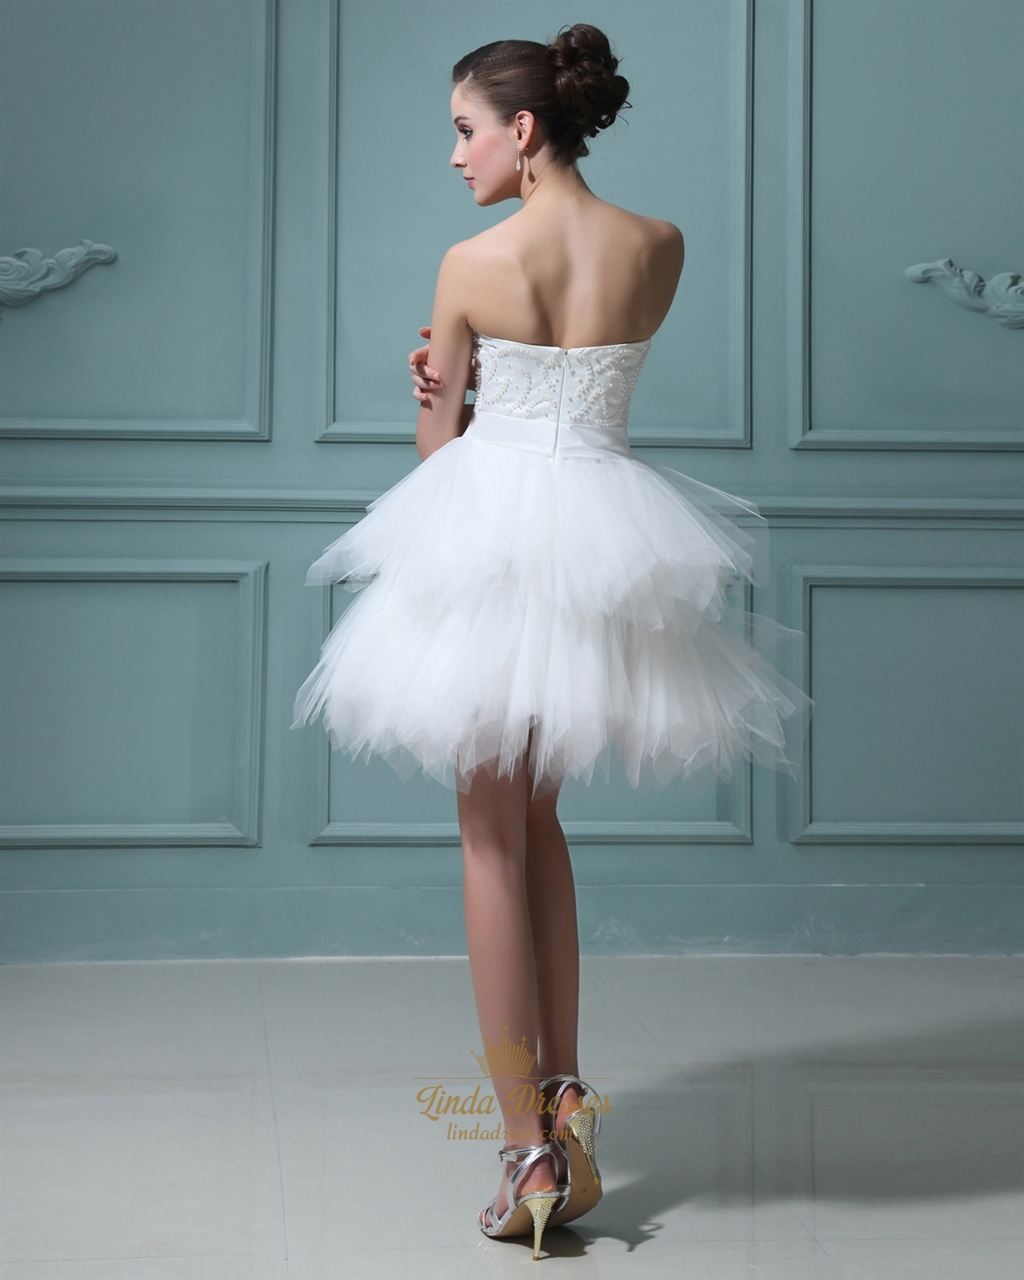 Elegant Short White Layered Tulle Skirt Wedding Dress With Pearls ...